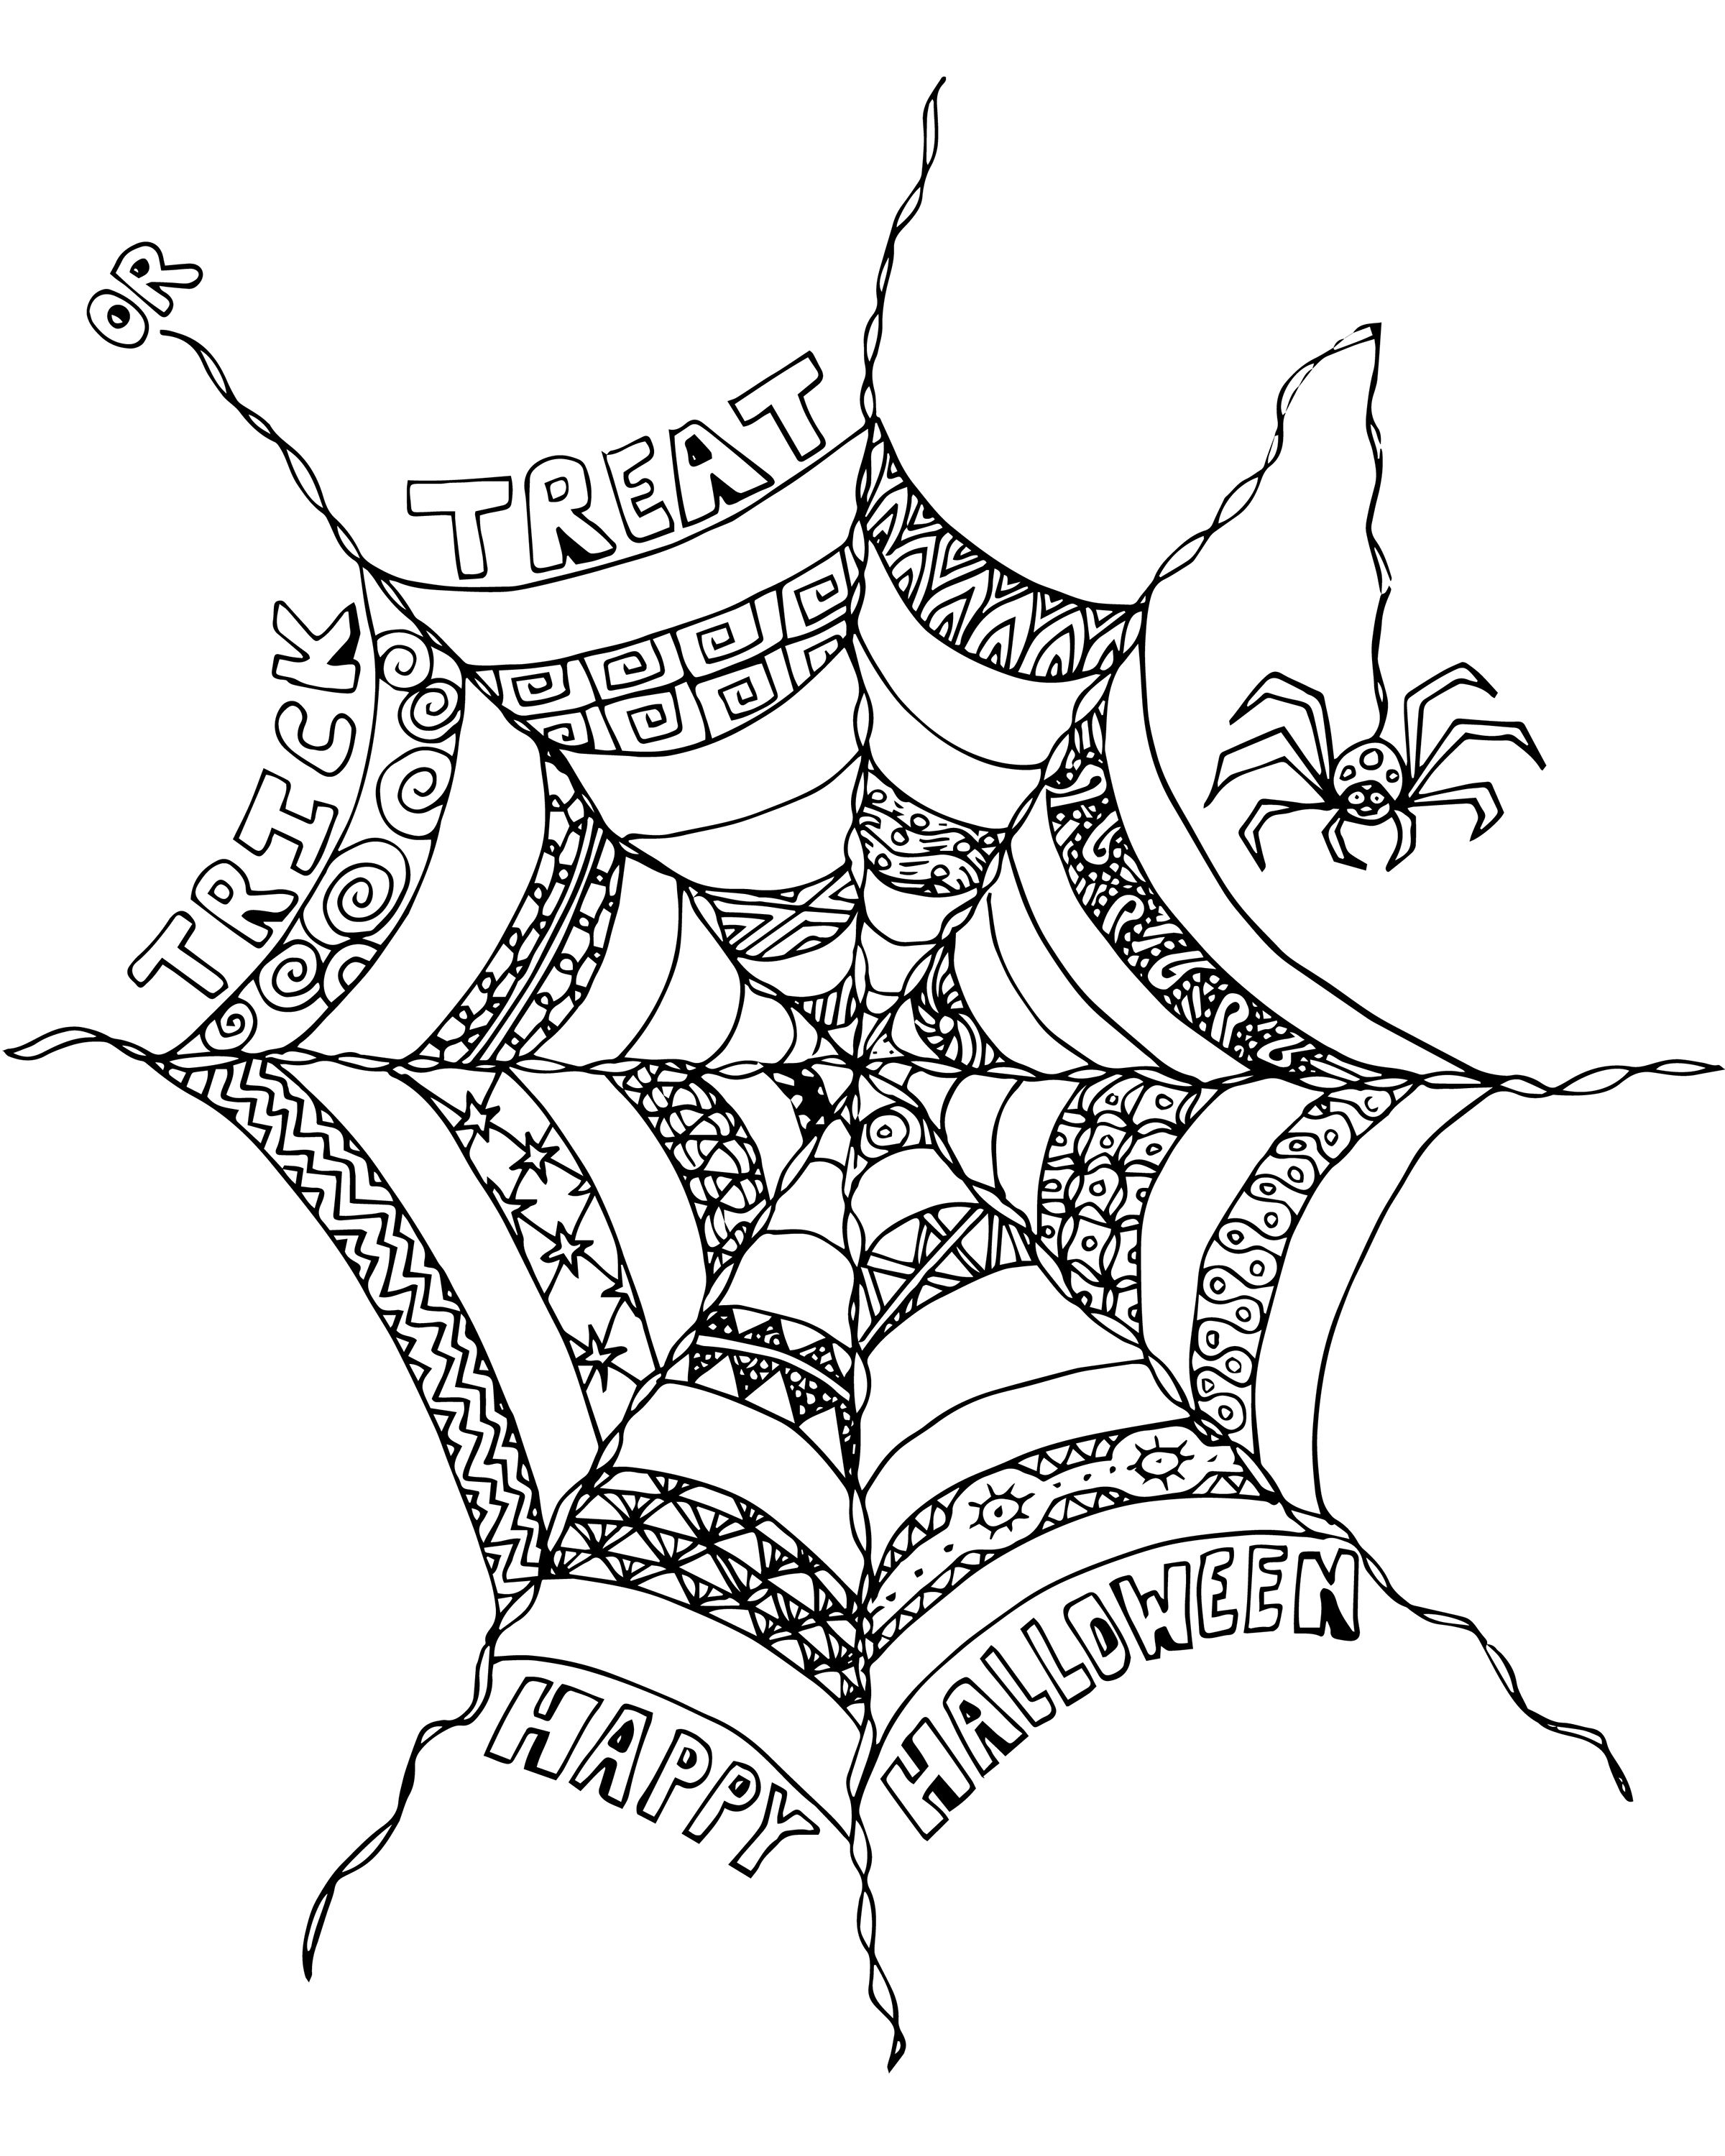 Https Haningtonbrothers Xyz Image 364956 Full Luxury Free Printable Halloween Coloring Pages Halloween Coloring Pages Printable Free Halloween Coloring Pages